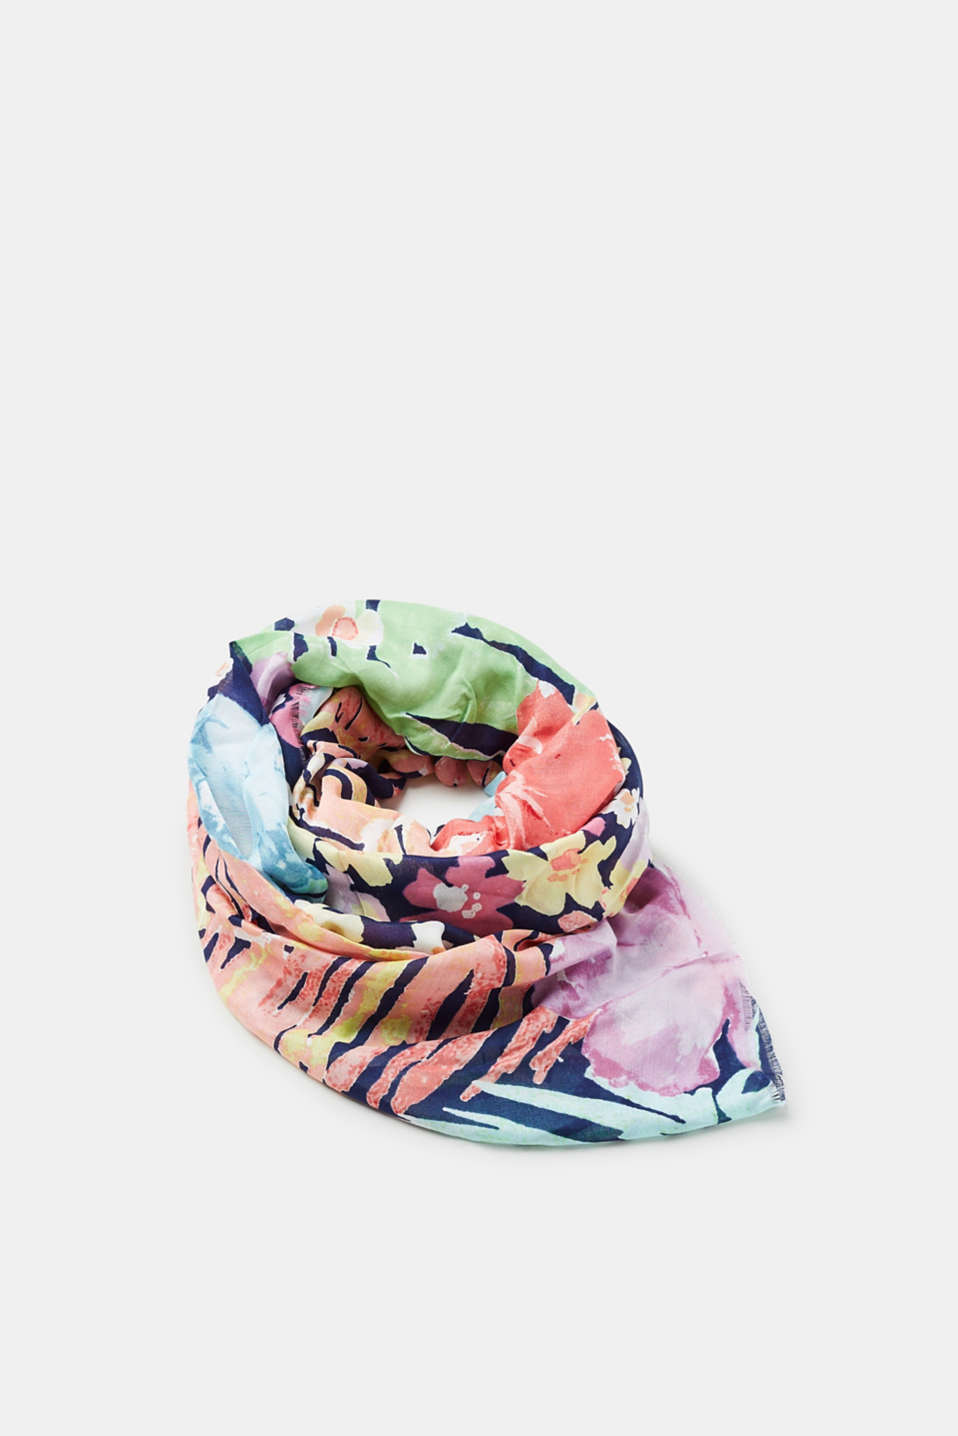 A colourful accessory that scores high style points! This woven scarf with a tropical floral print can be combined in many different ways.